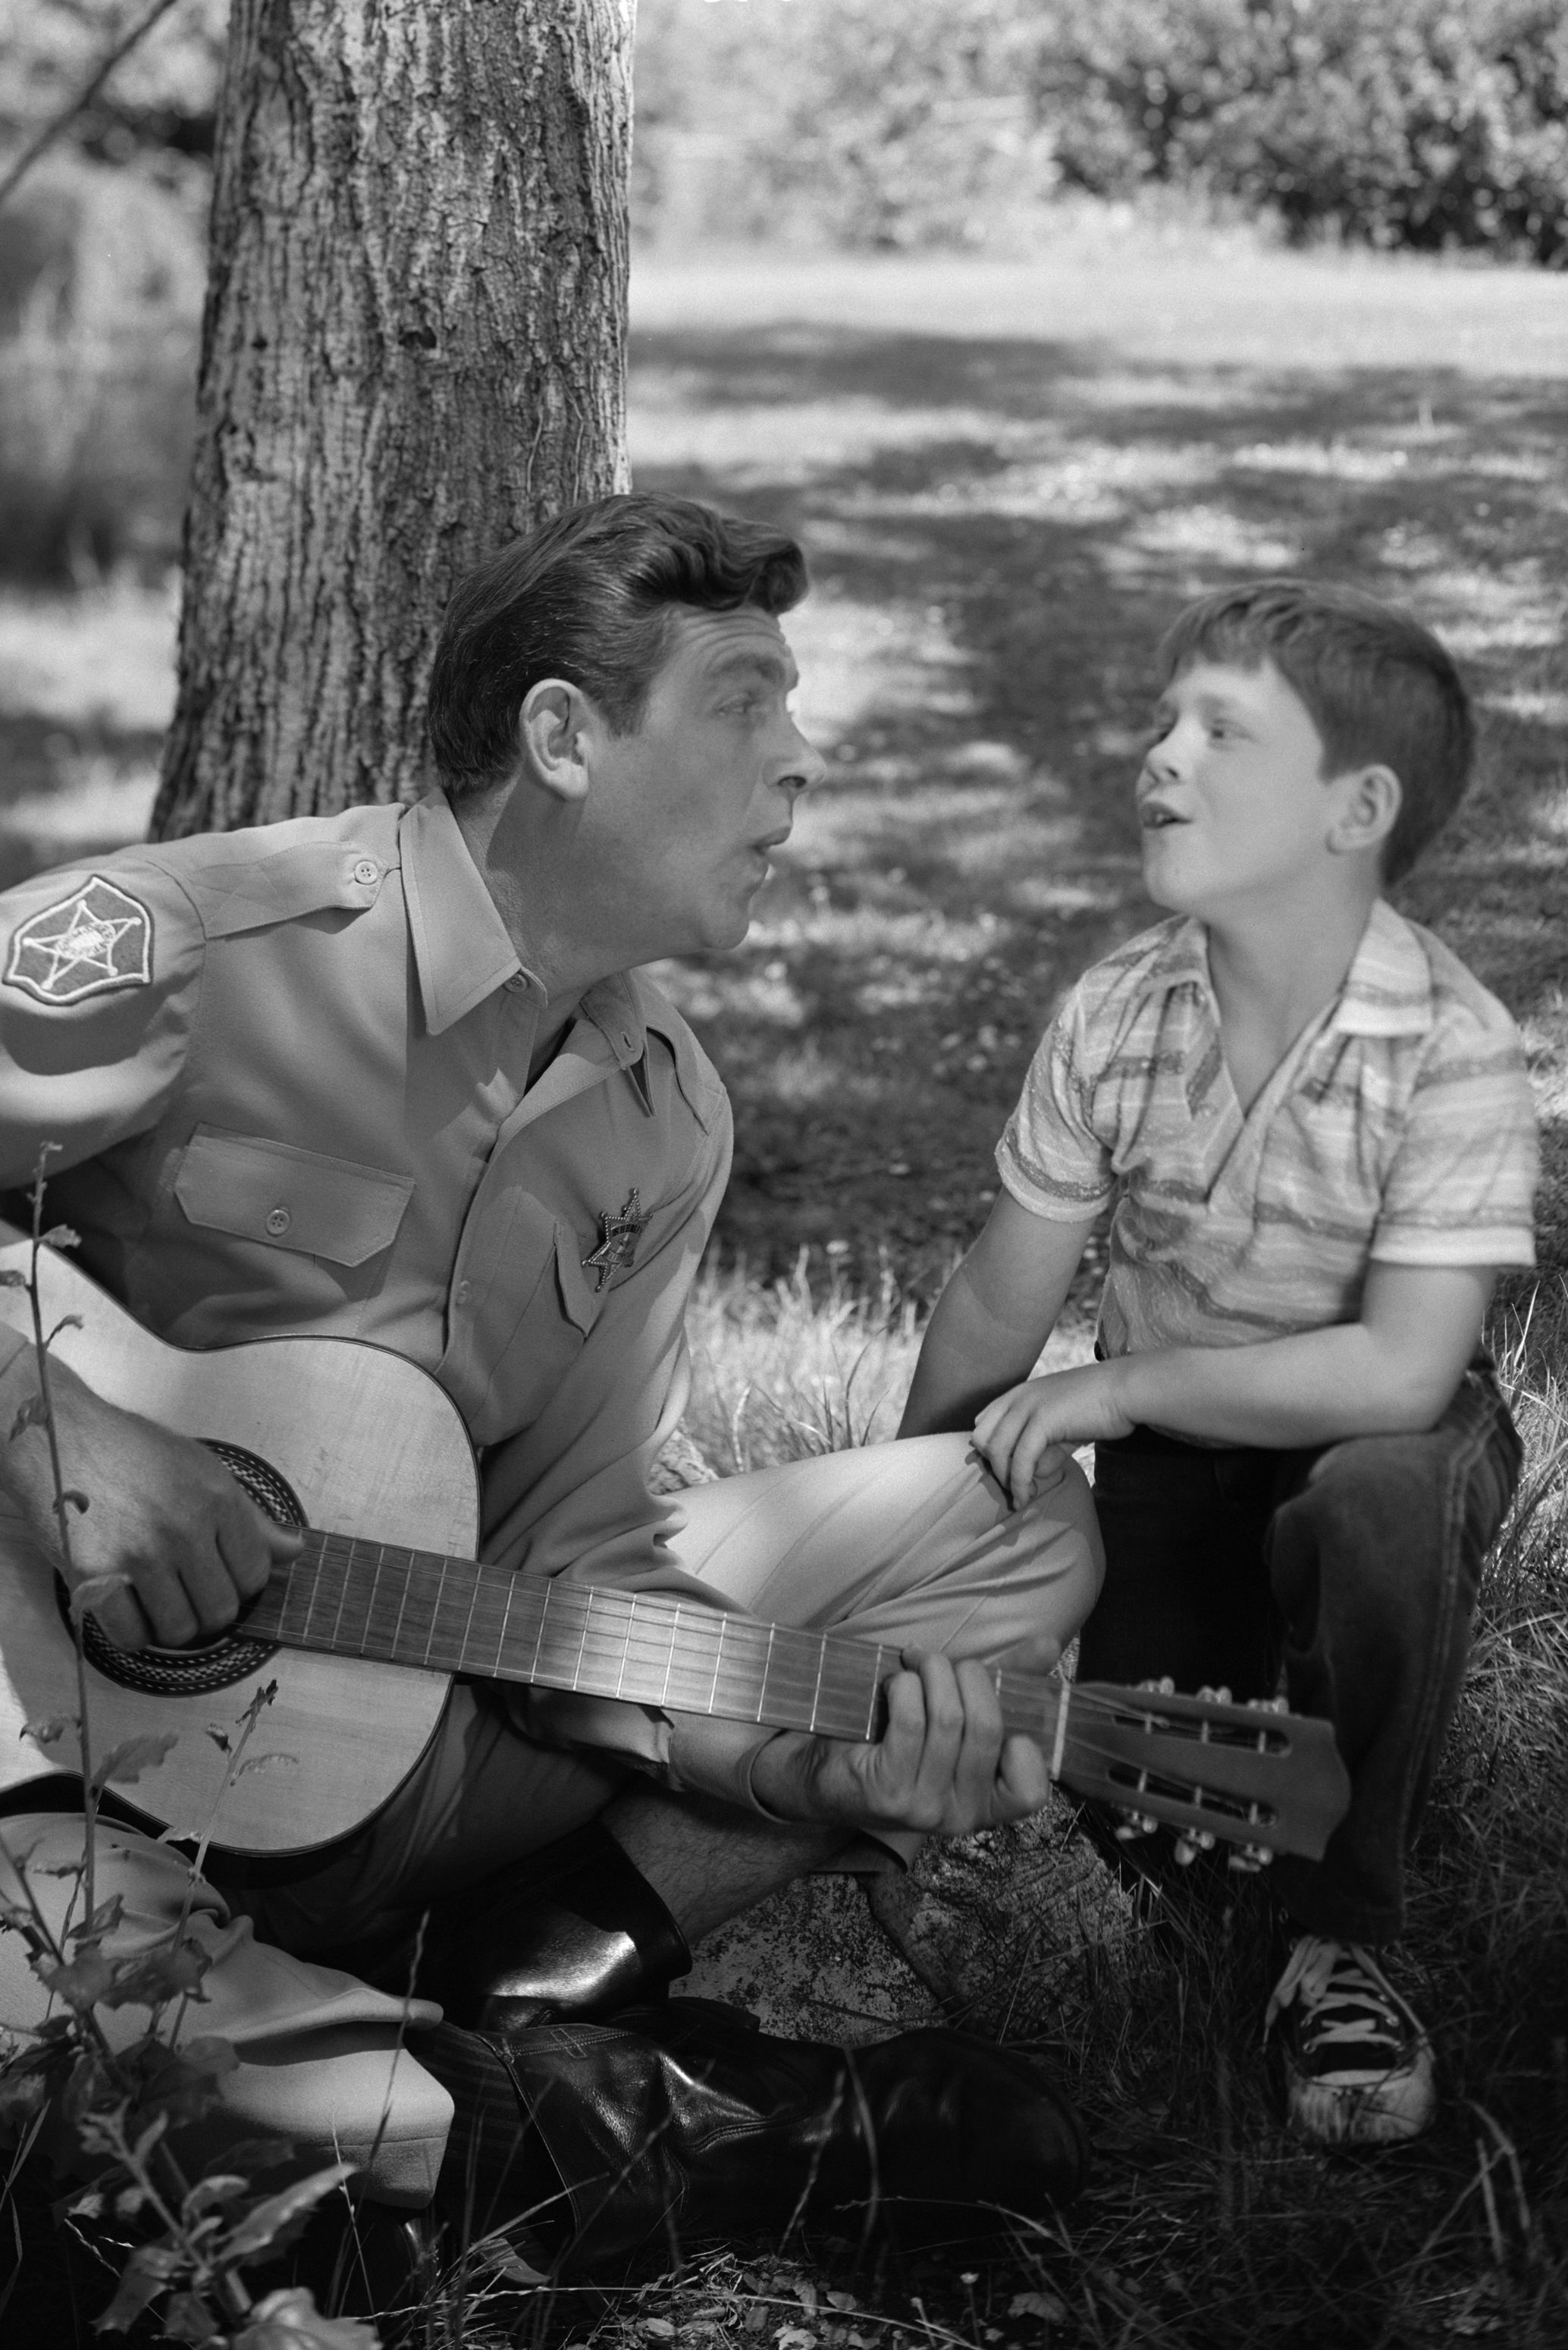 Andy Griffith Fan or Not, Every Southerner Should Pay a Visit to Mount Airy, North Carolina